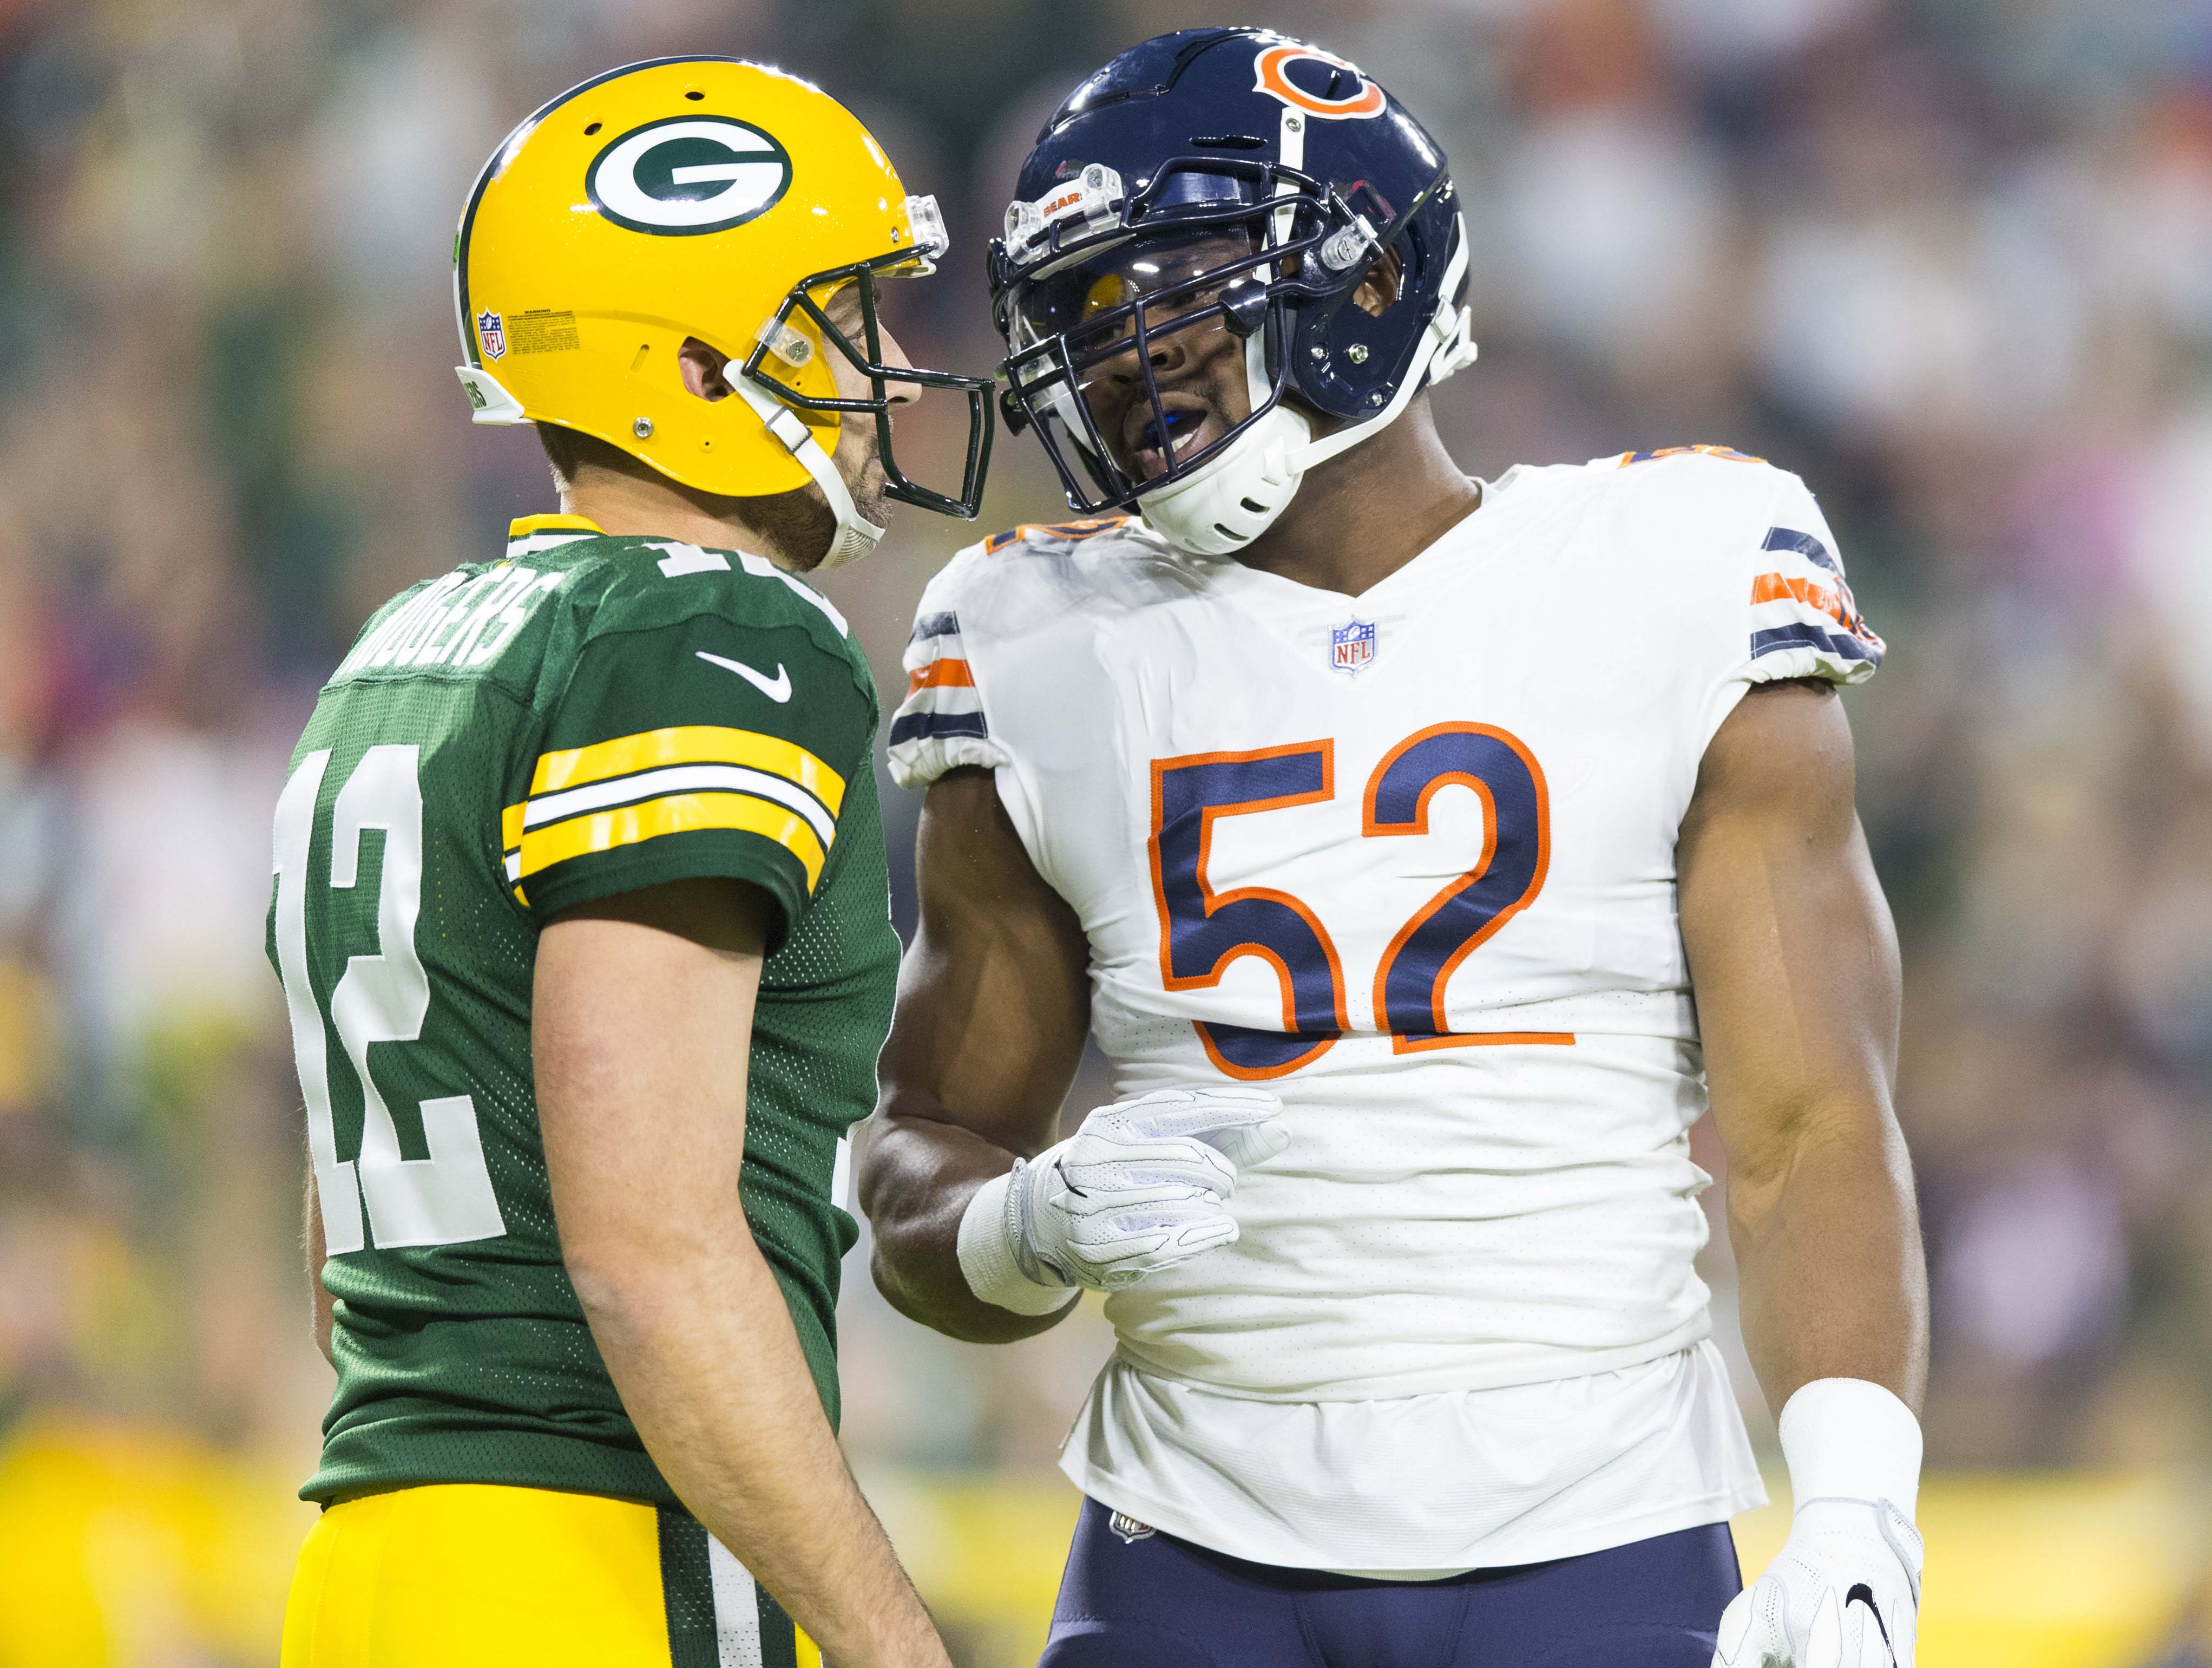 Packers, Bears Preparing for Intense Rematch in Chicago